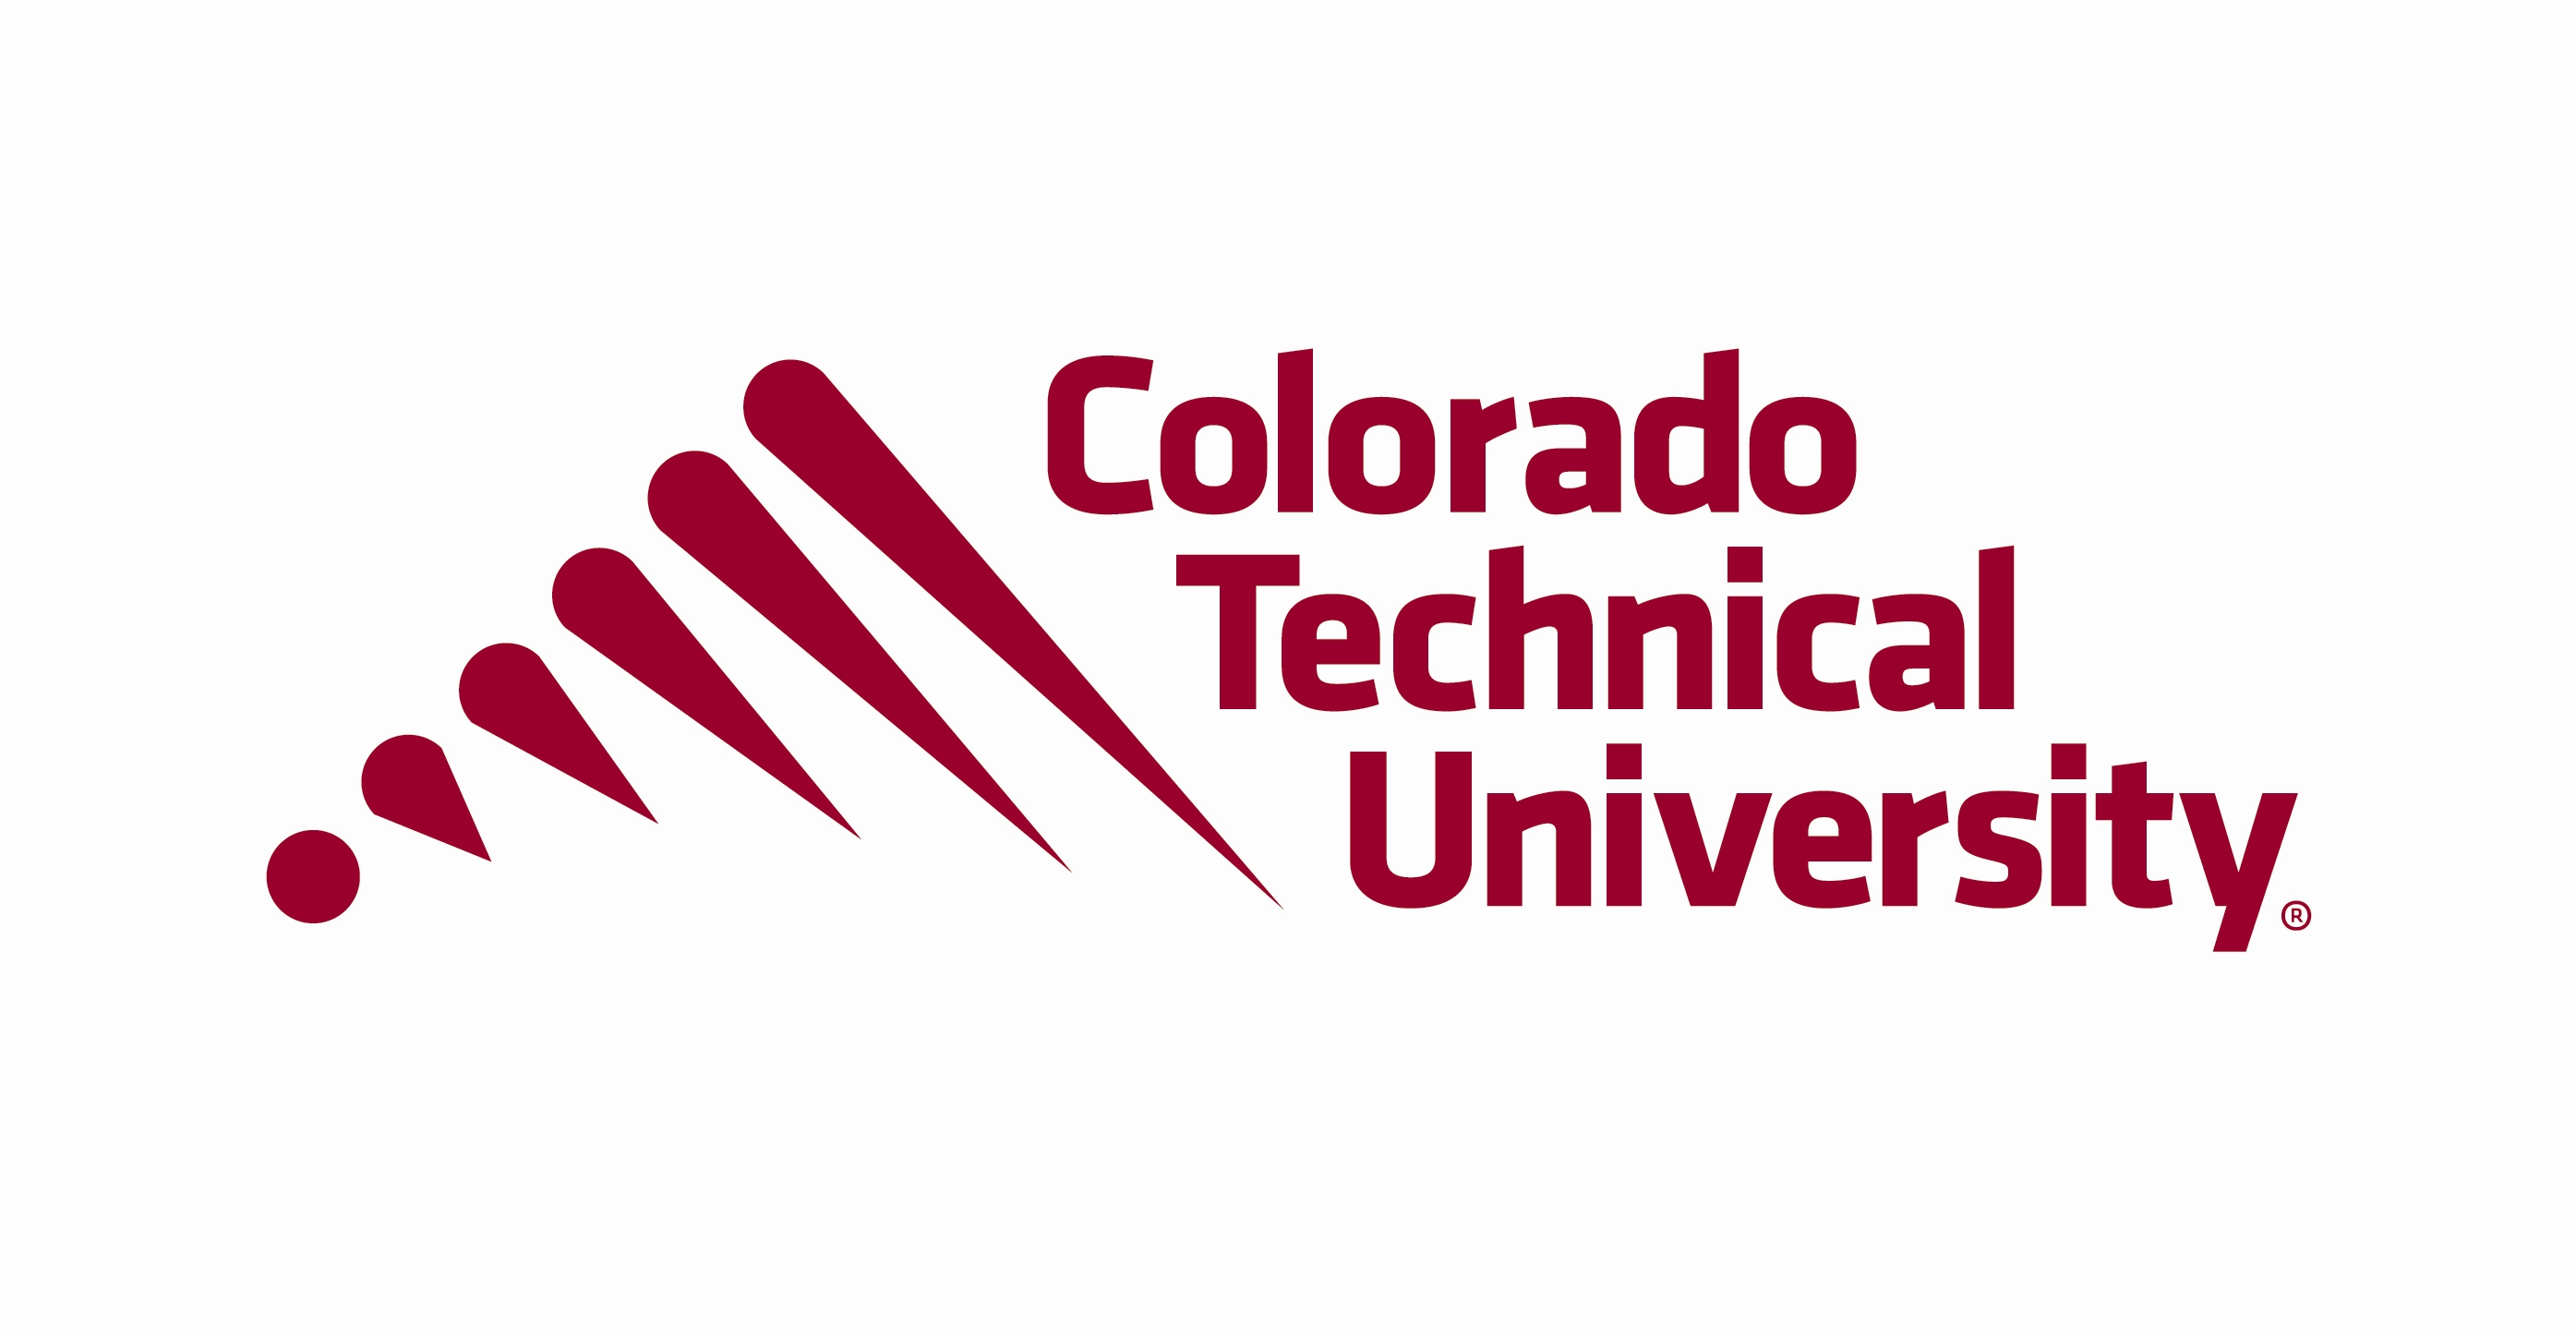 Colorado Tech Bachelor of Science in Business Administration - Data Analytics